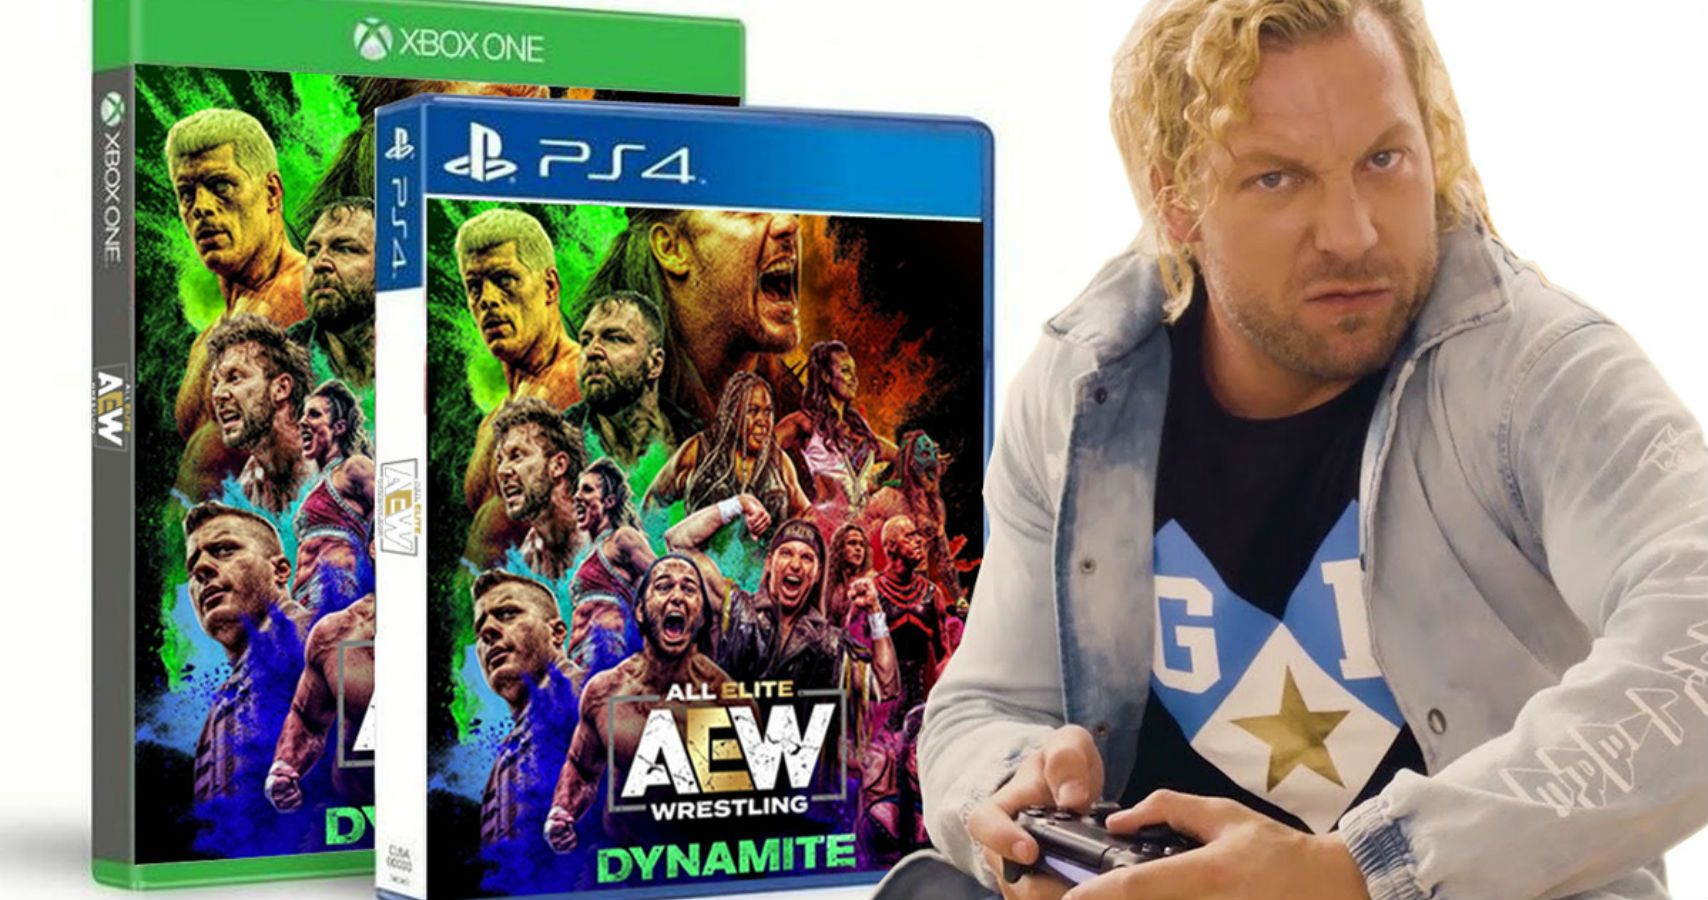 AEW works with many video games